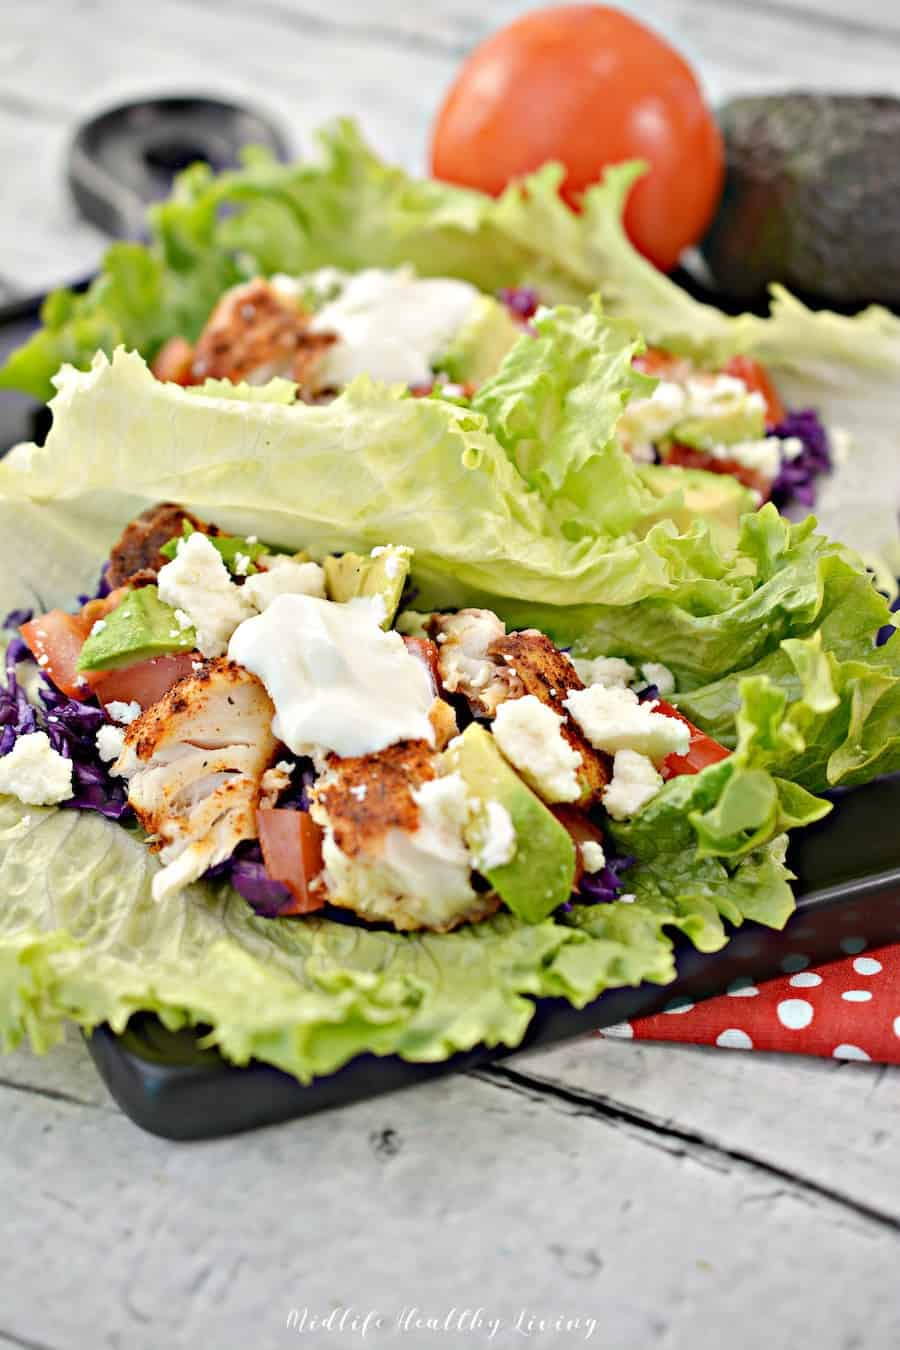 A great look at the delicious fish tacos served up on green leaf lettuce.